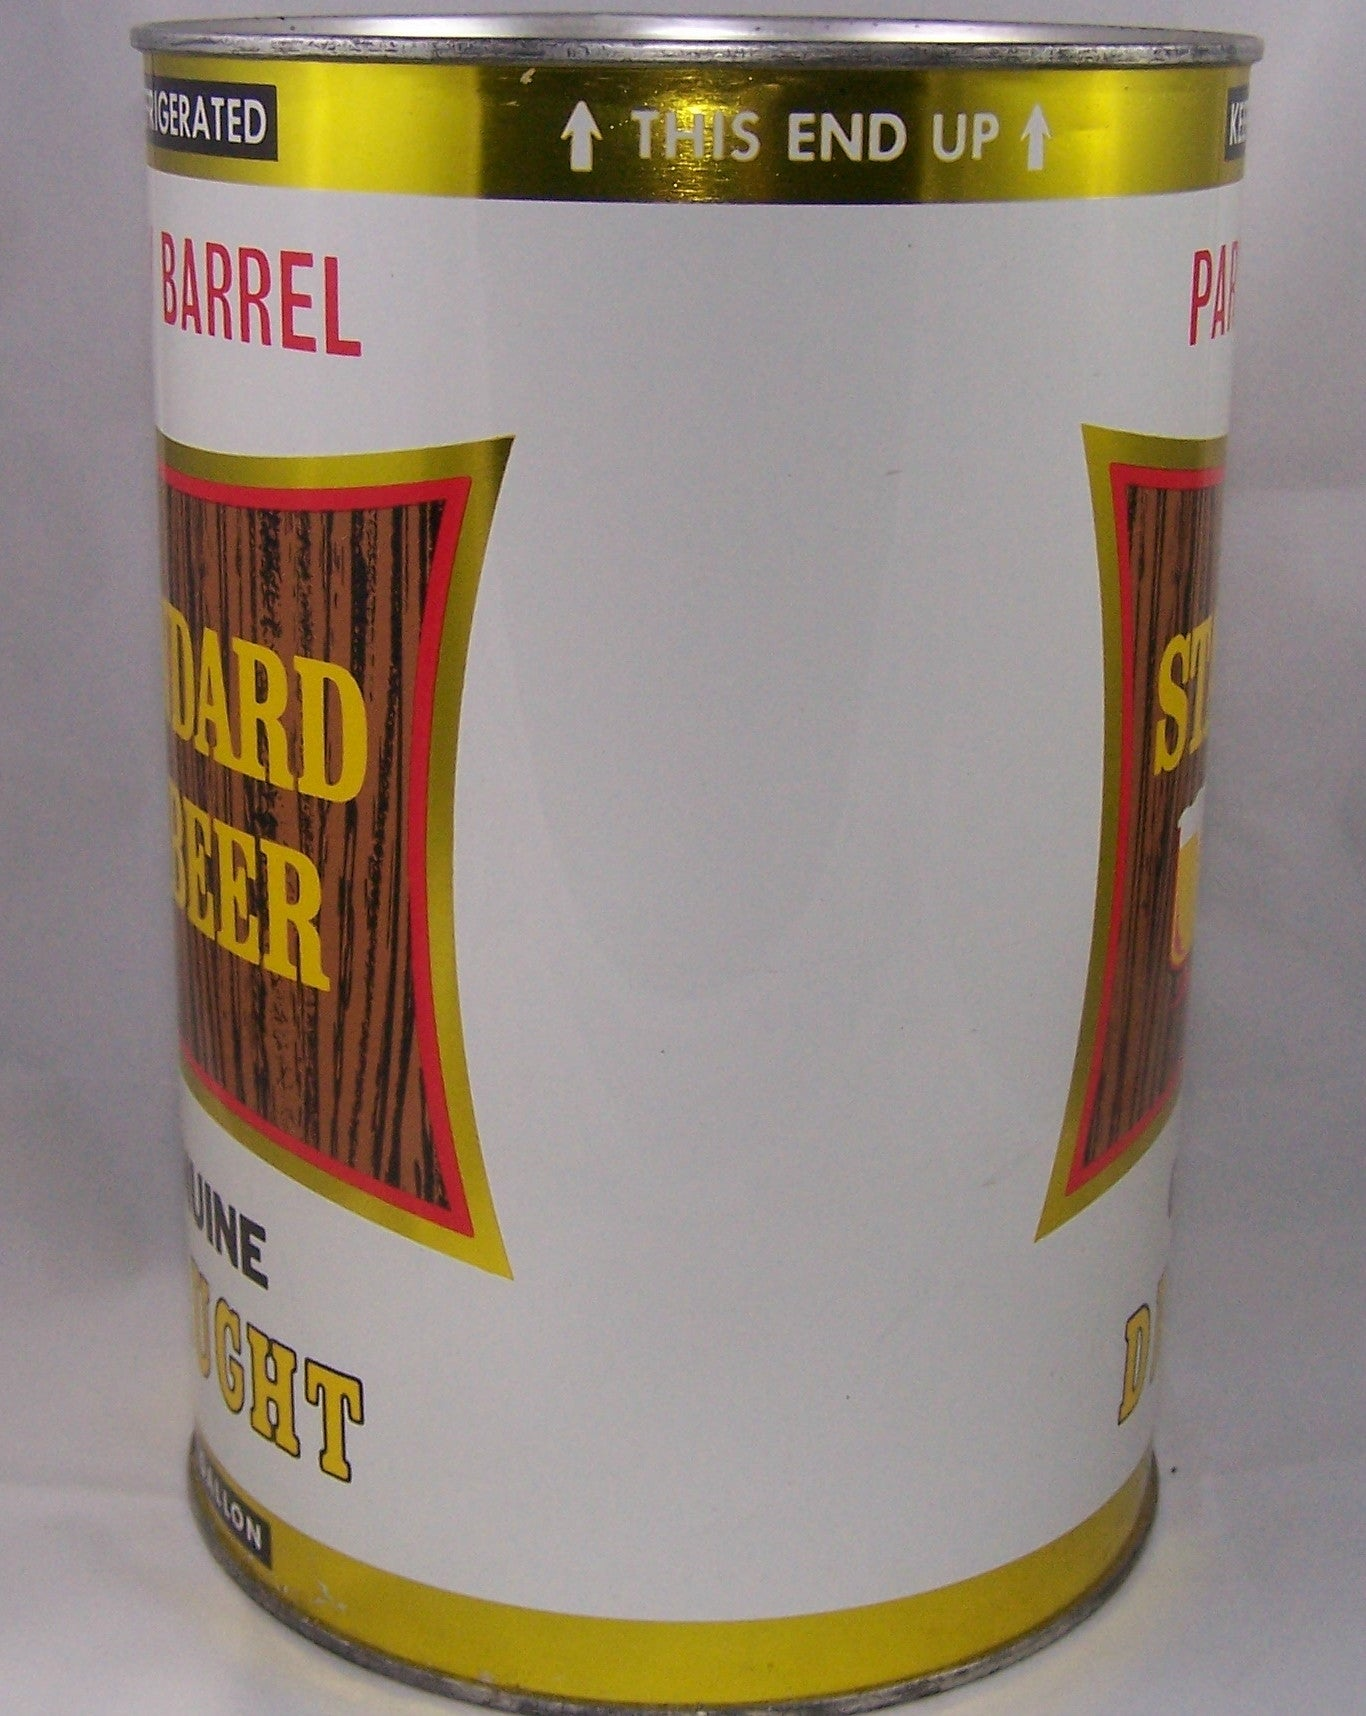 Standard Beer Party Barrel, USBC 246-8, Grade A1+